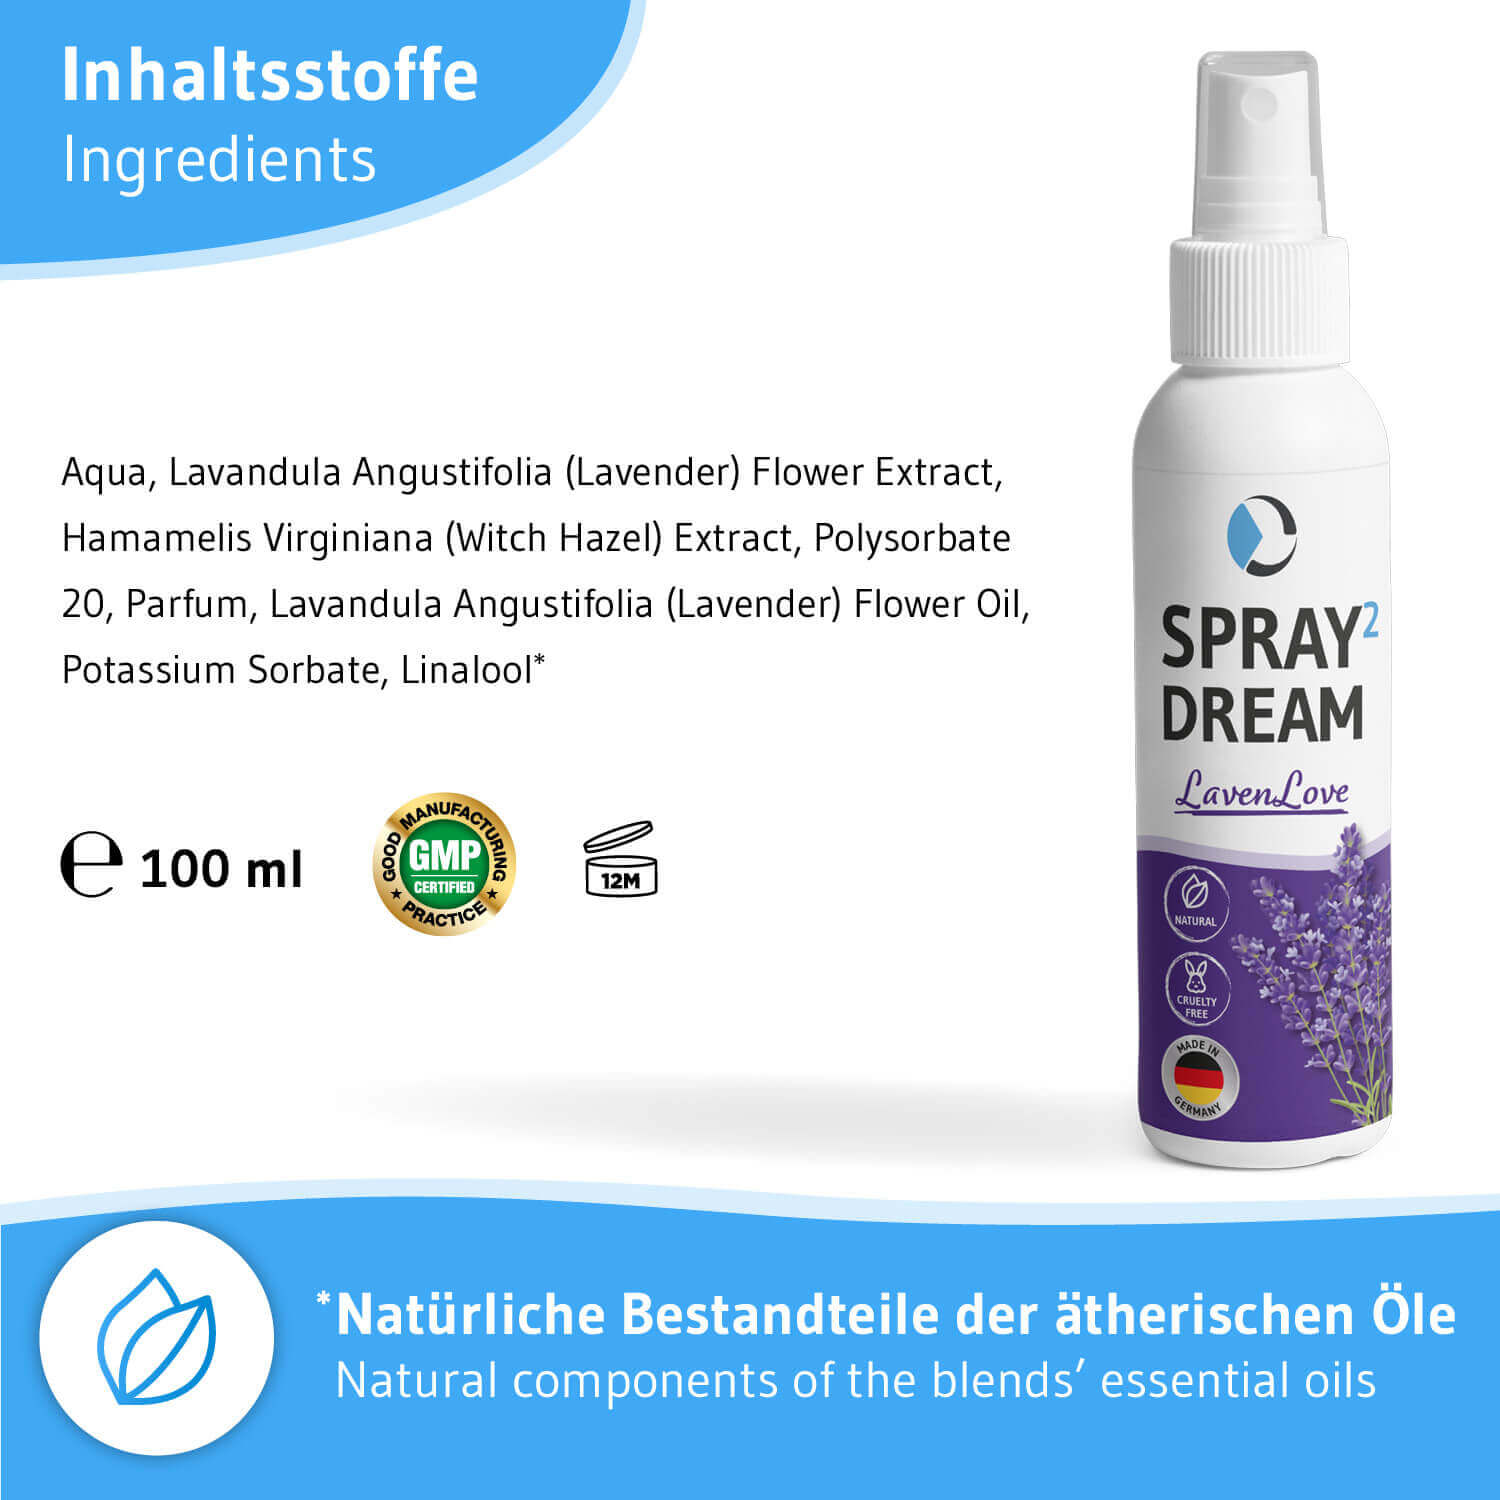 SPRAY² Dream LavenLove Aroma-Kissenspray